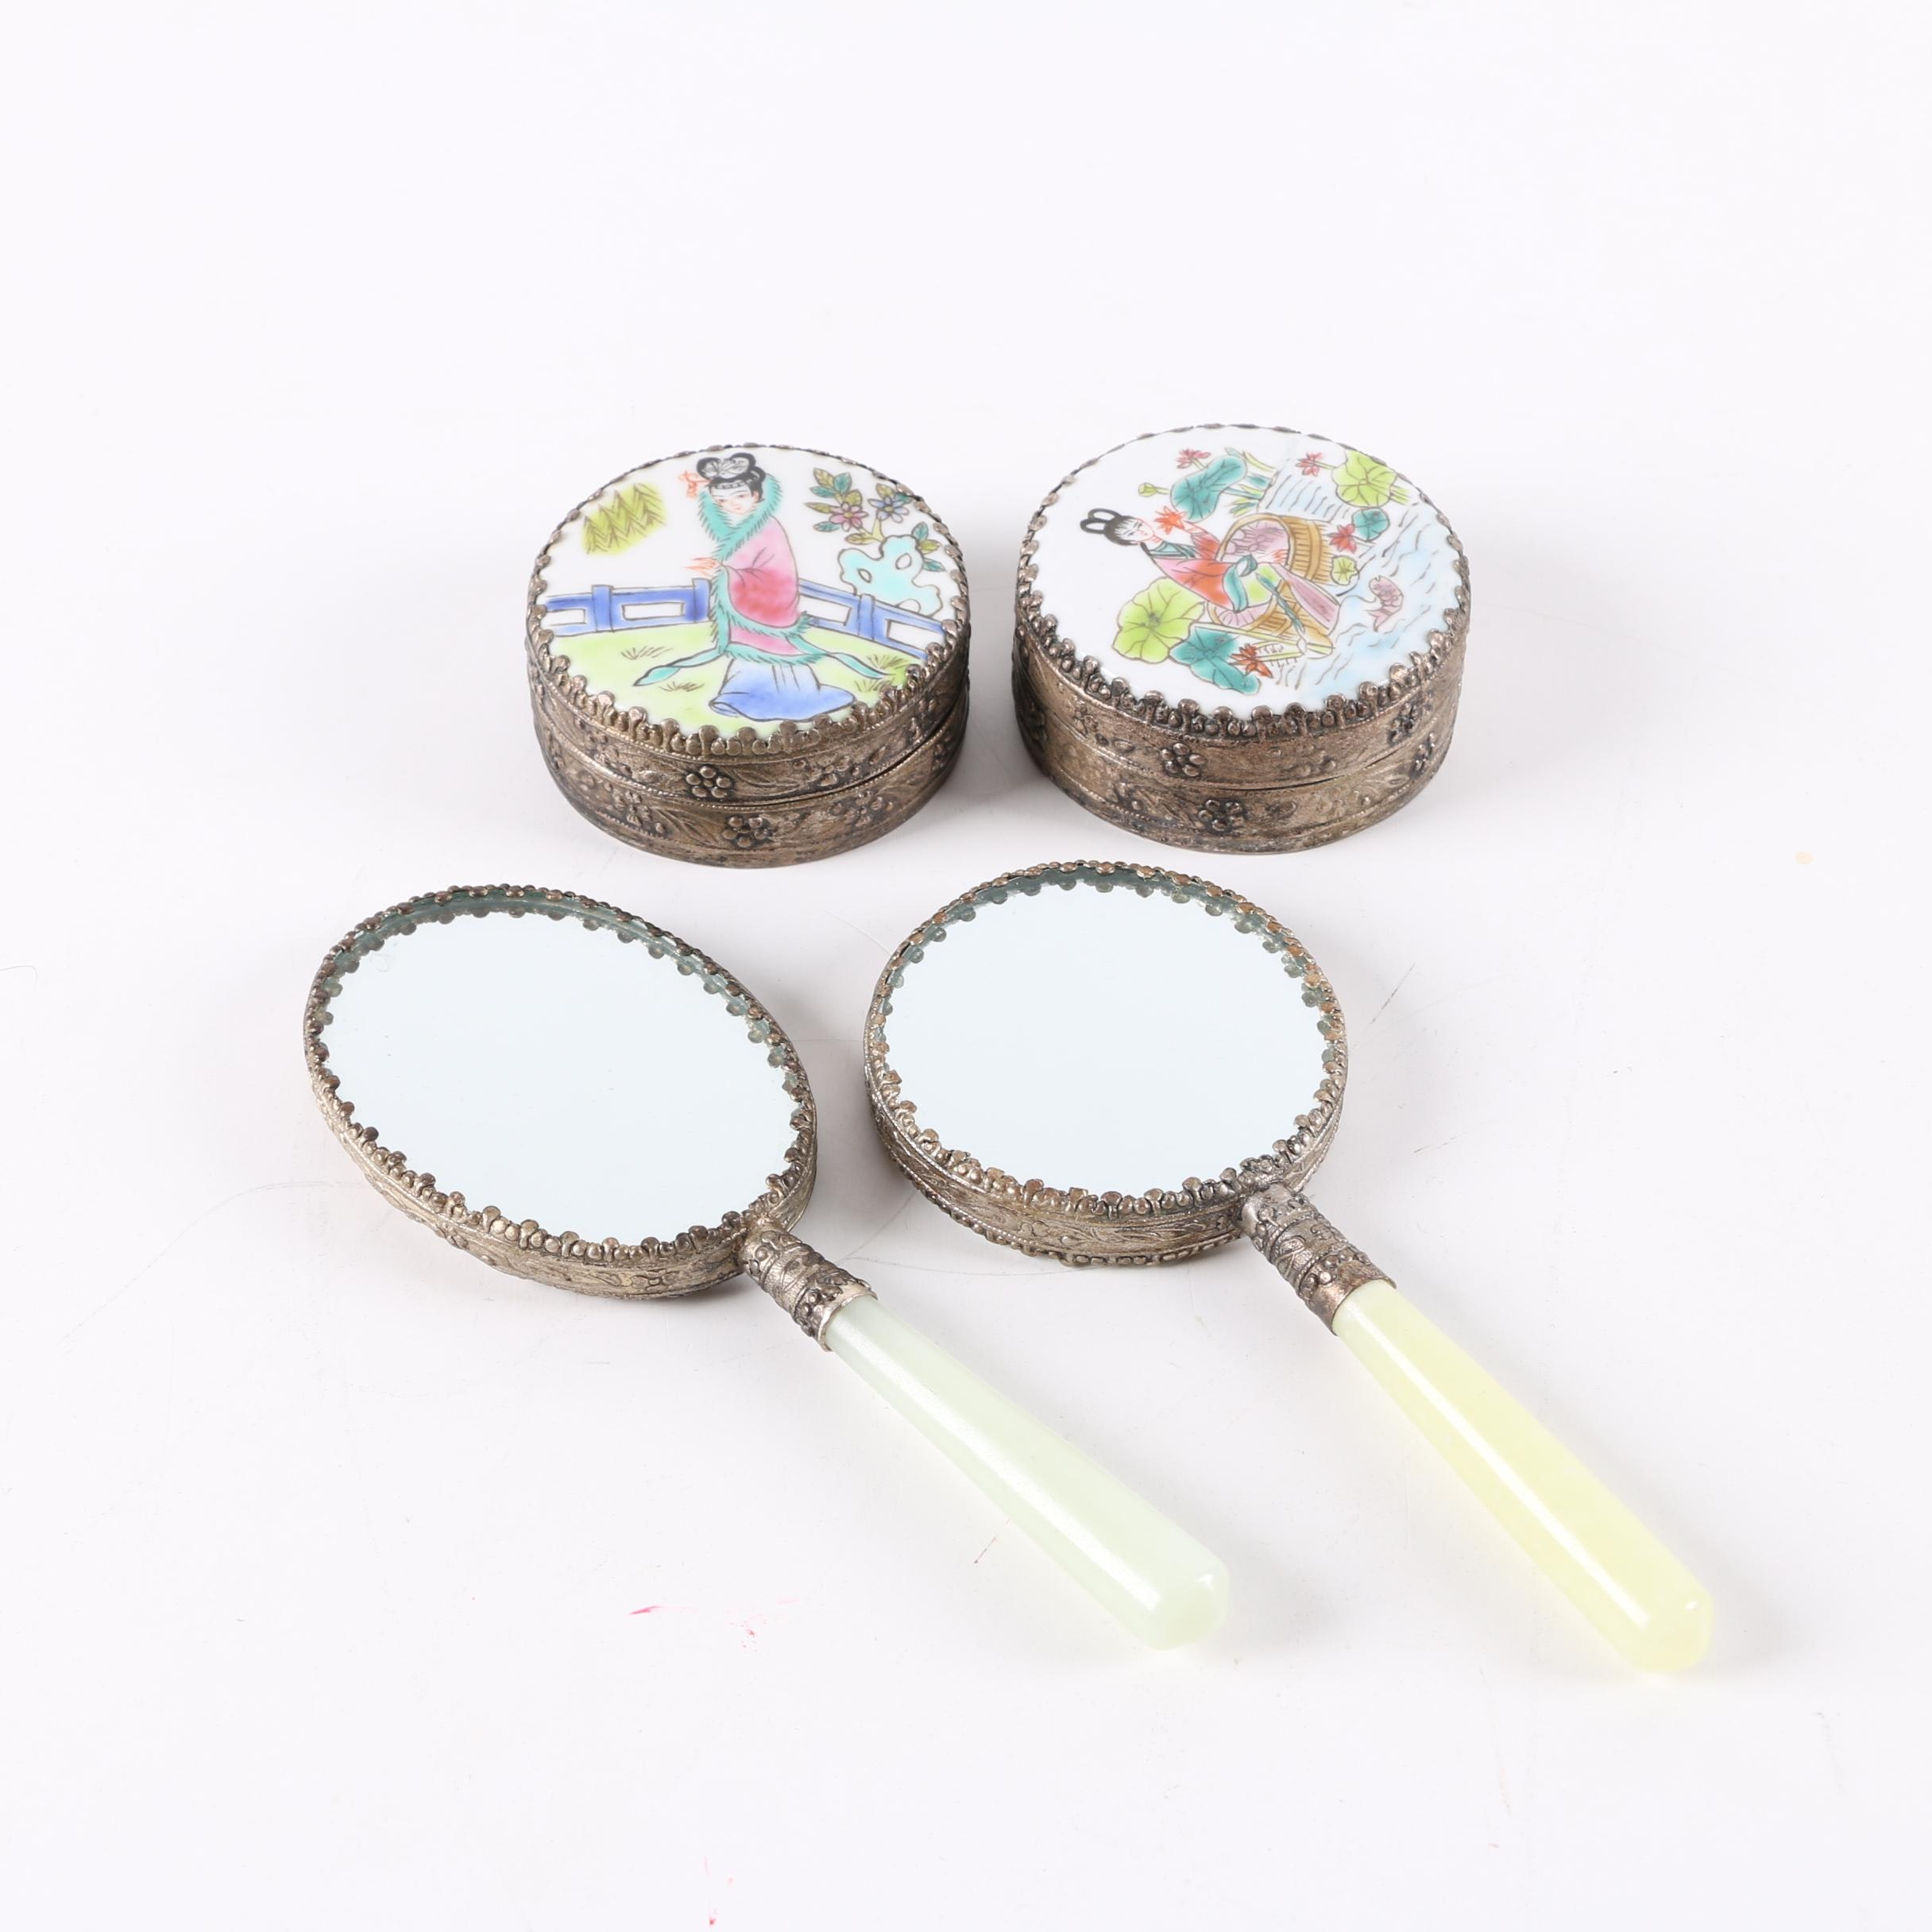 Chinese Serpentine-Handled Hand Mirrors with Metal and Ceramic Trinket Boxes